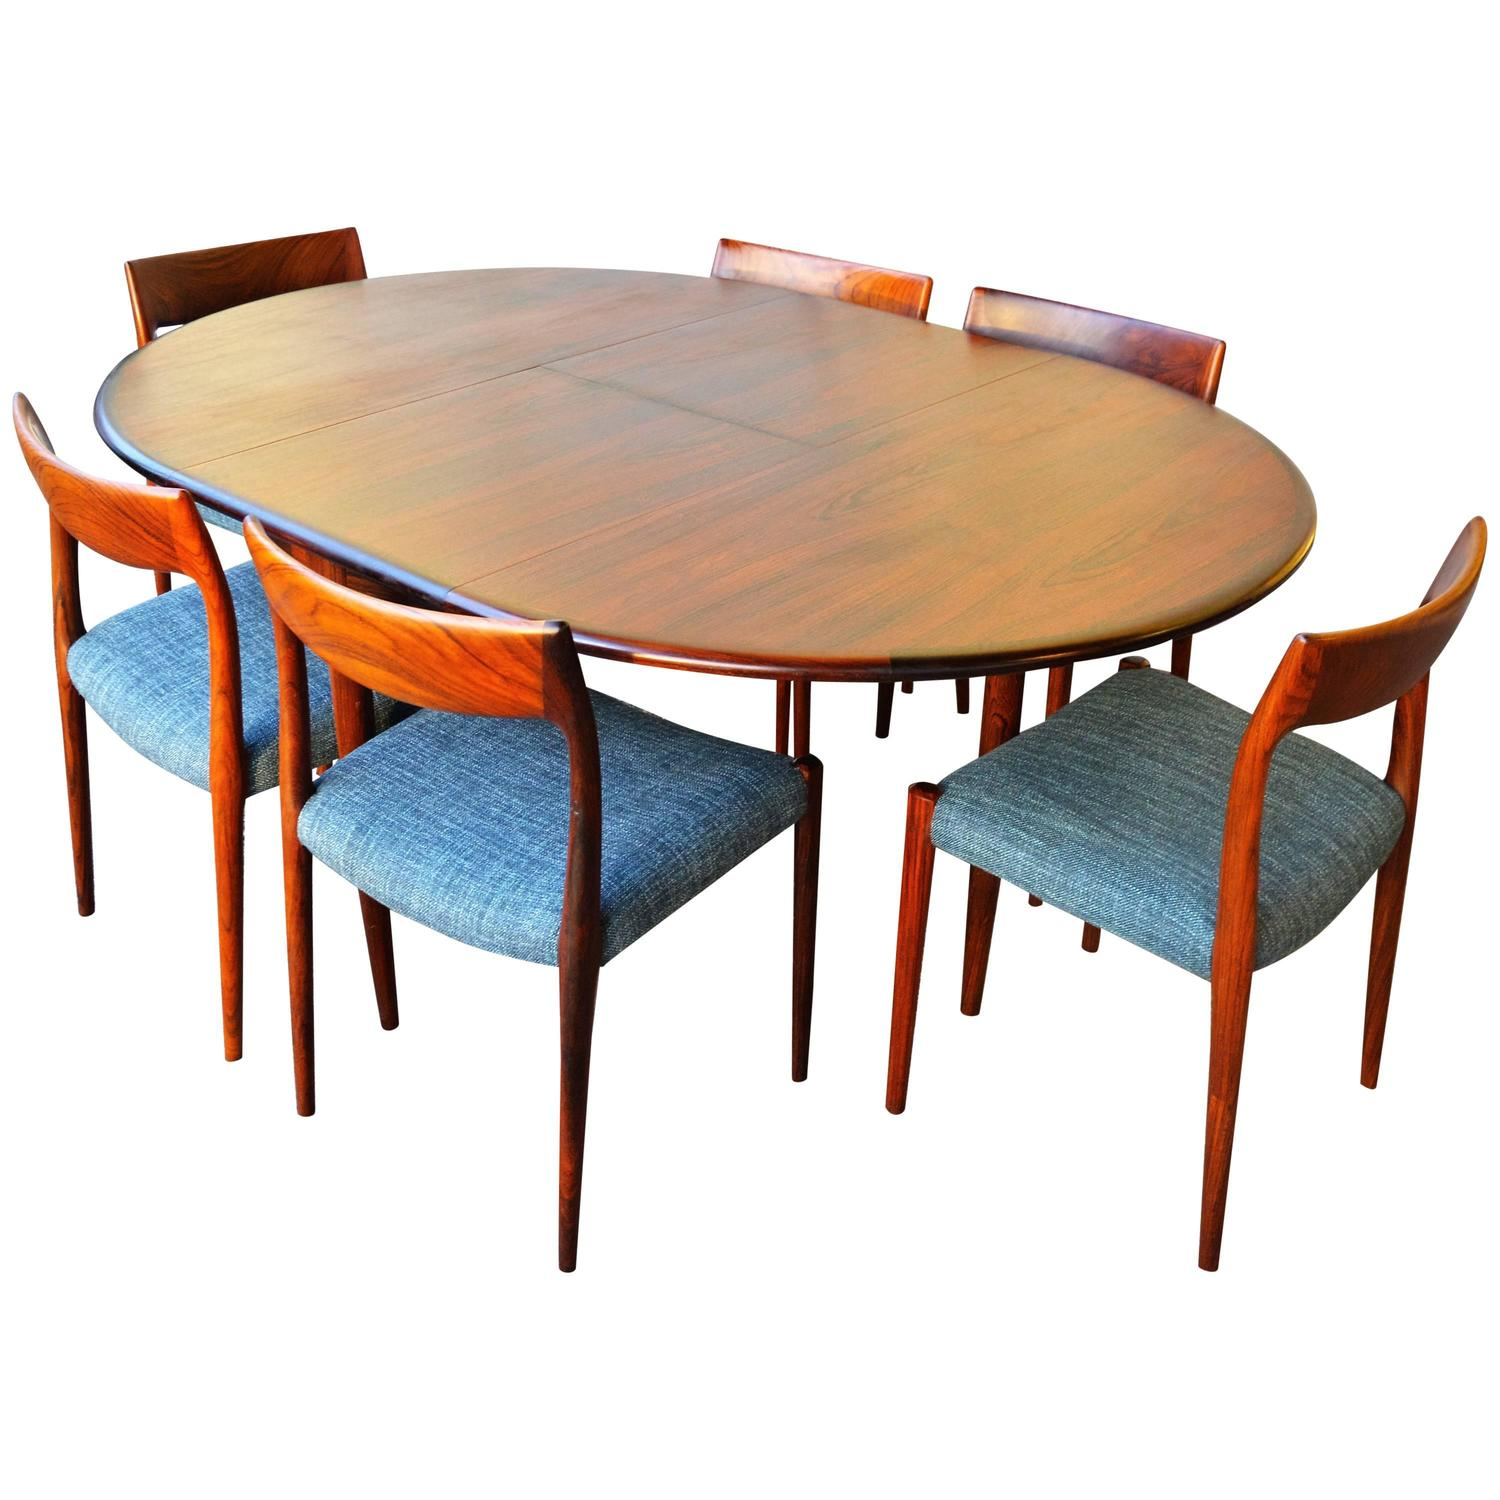 Unique Dining Room Tables And Chairs: Unique Restored N.O. Moller Rosewood Round One Leaf Dining